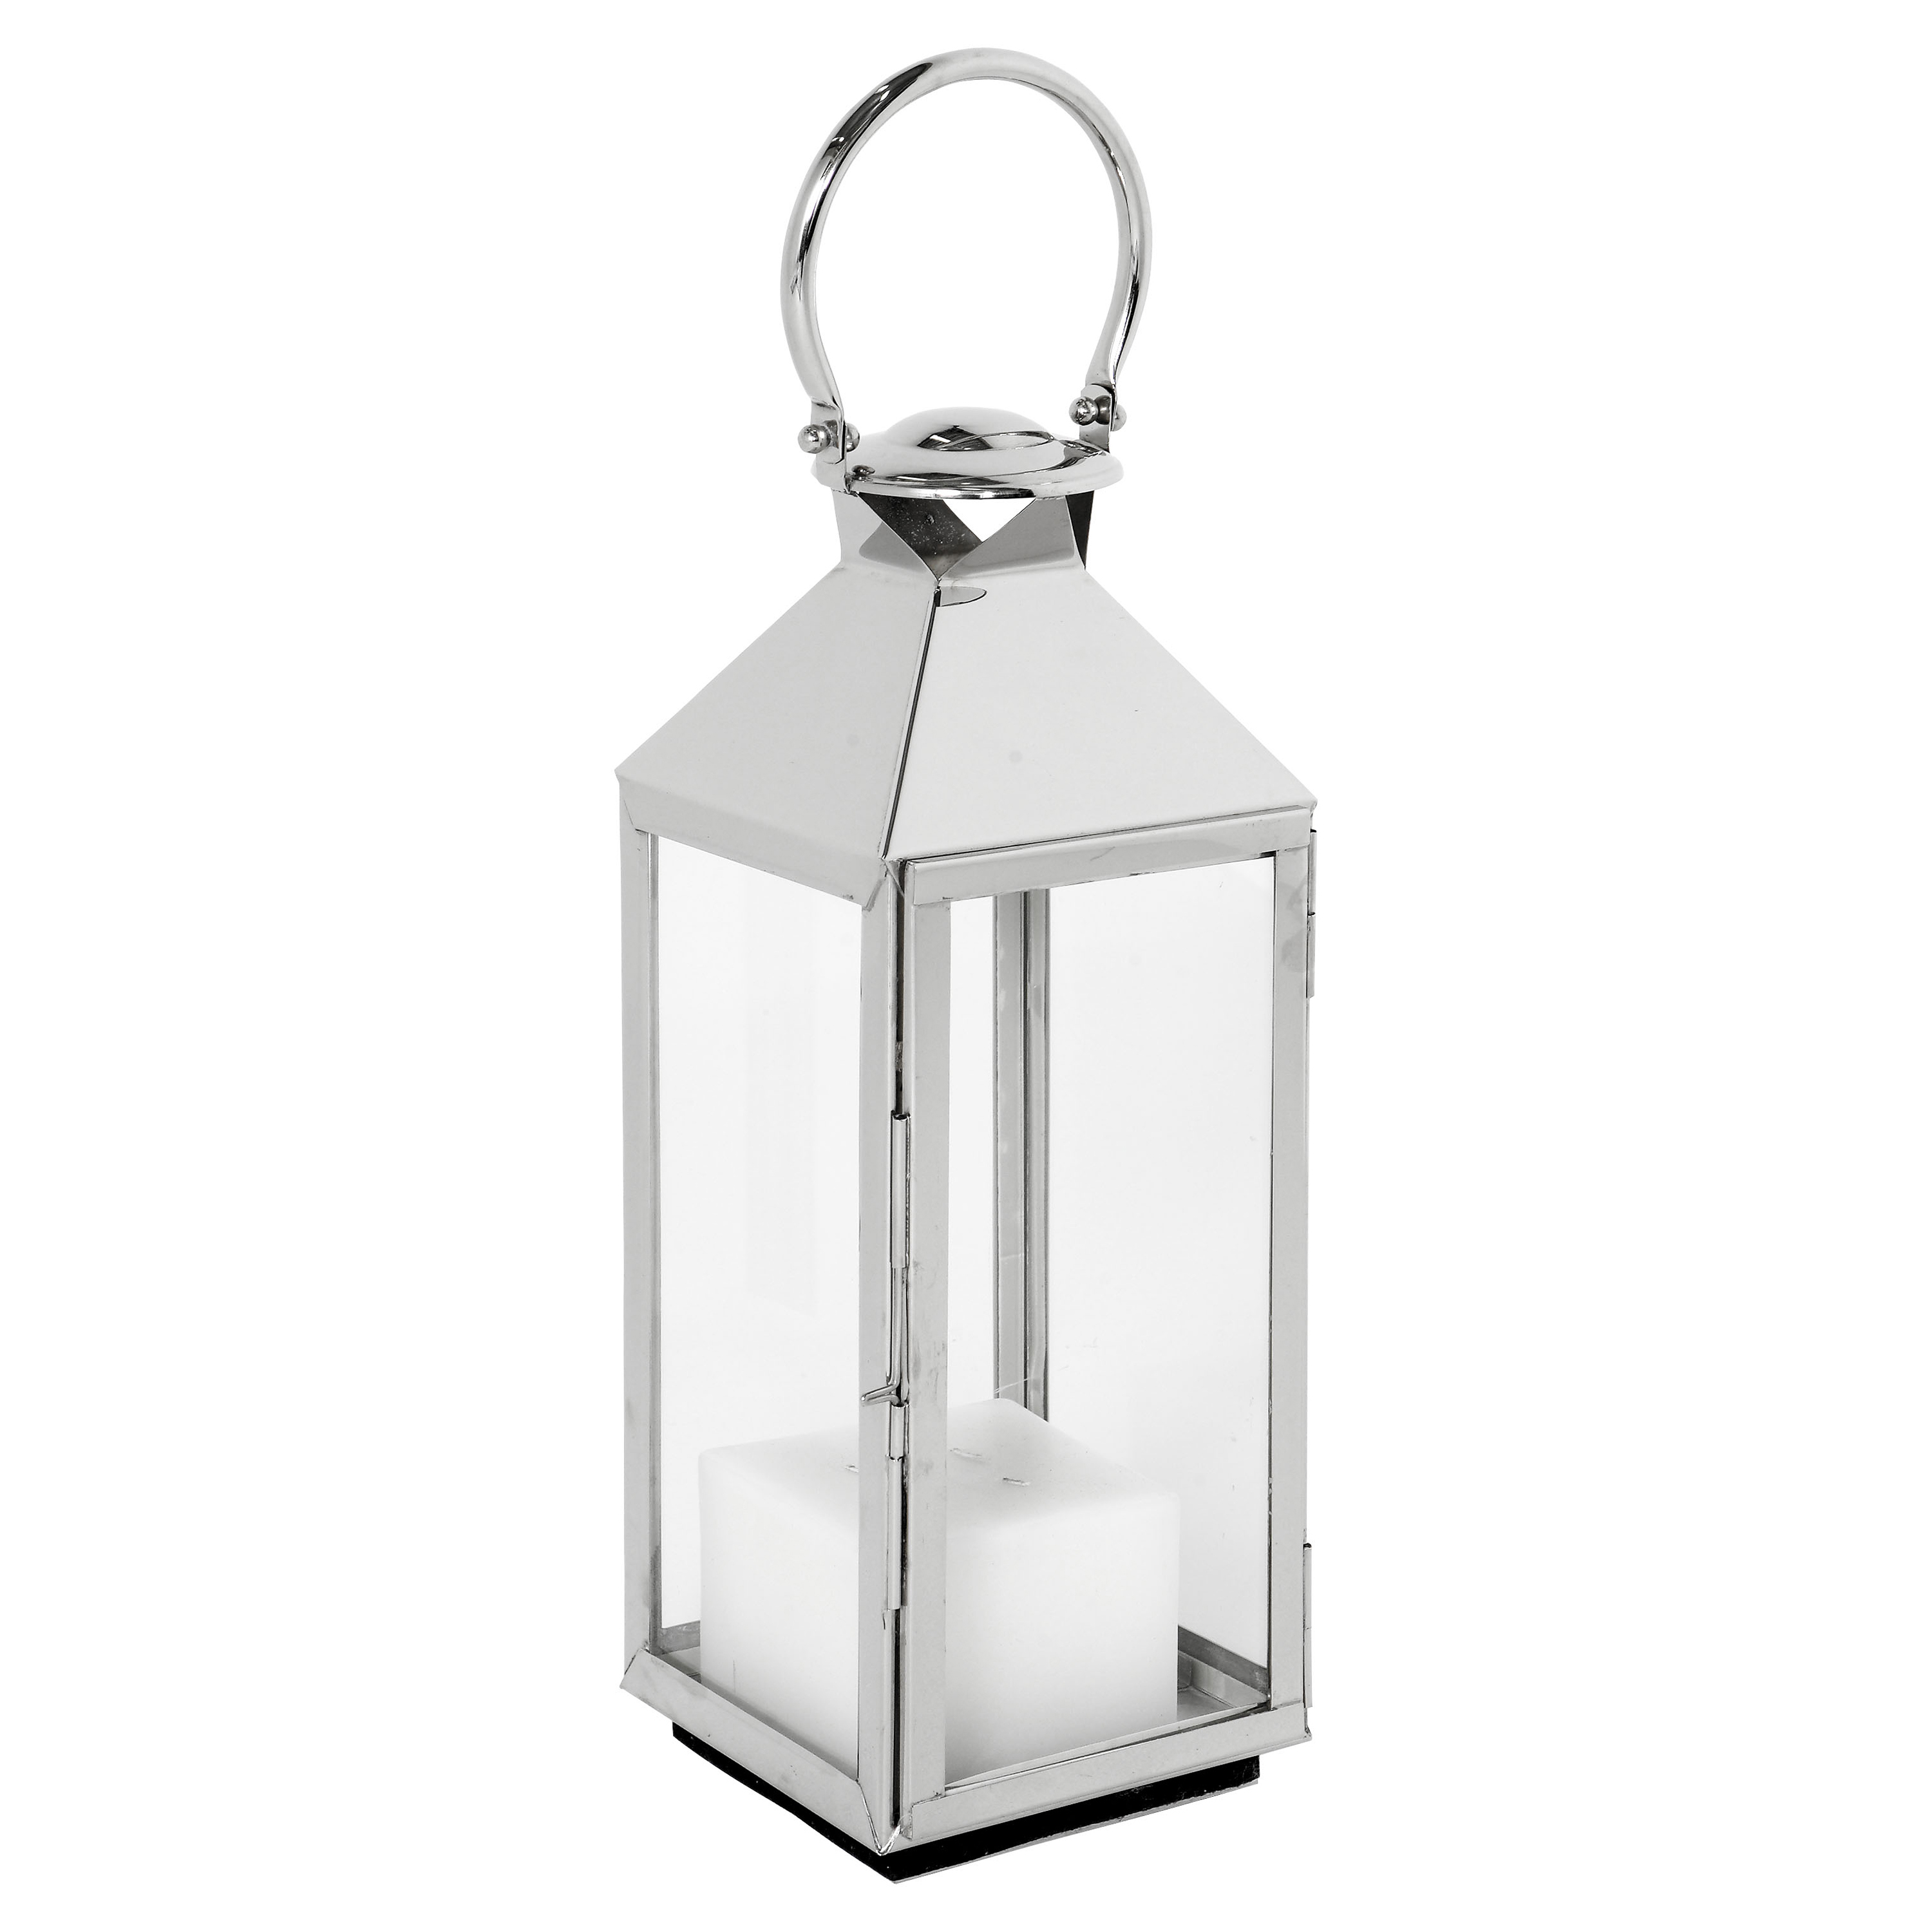 Alison Modern Classic Polished Silver Metal Candle Lantern - 21H